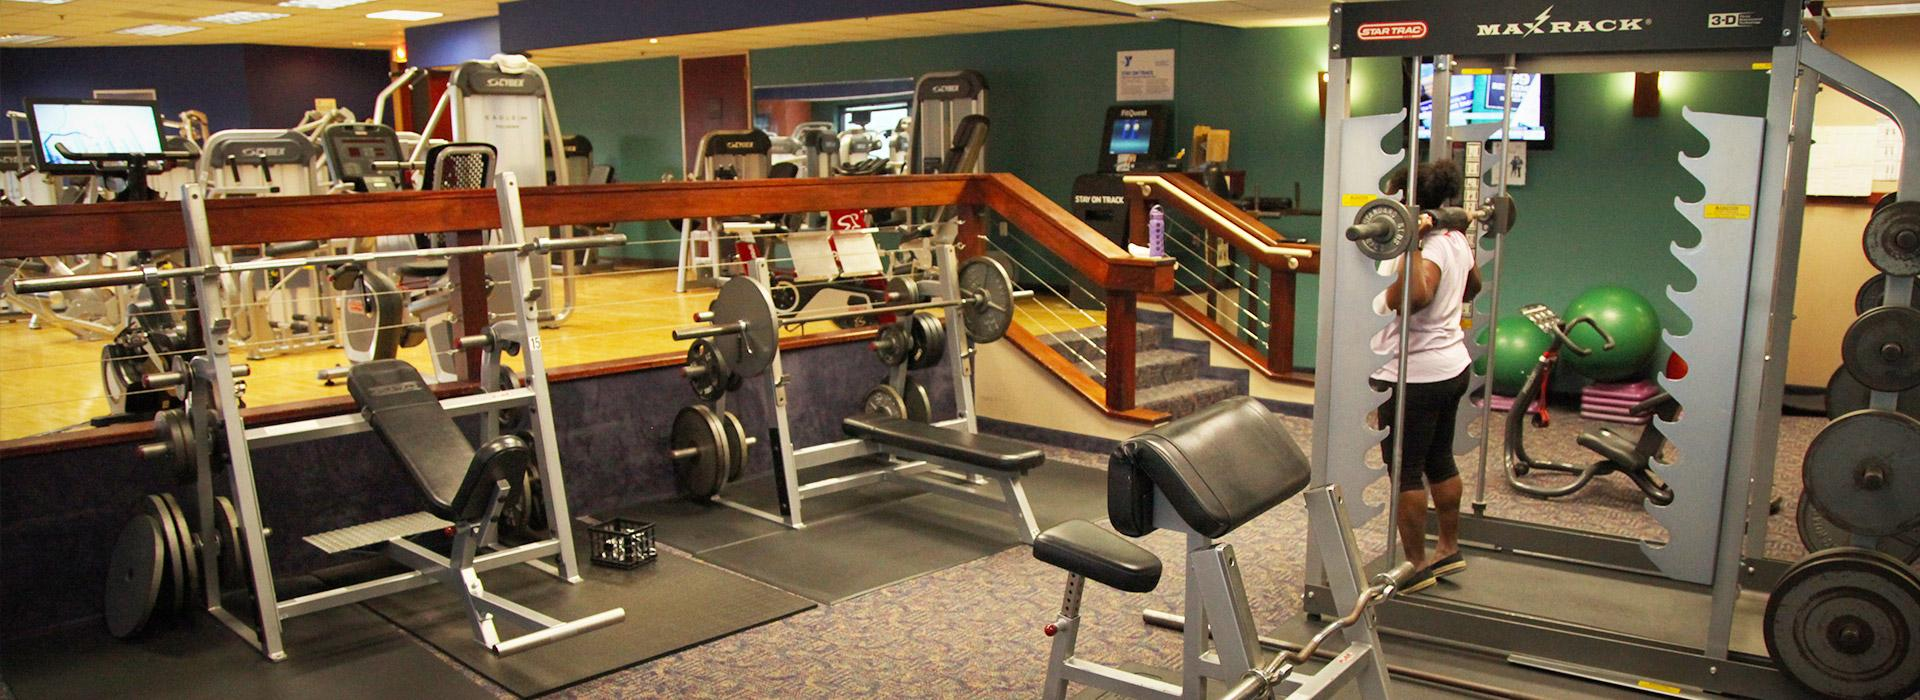 Dominion Tower fitness room